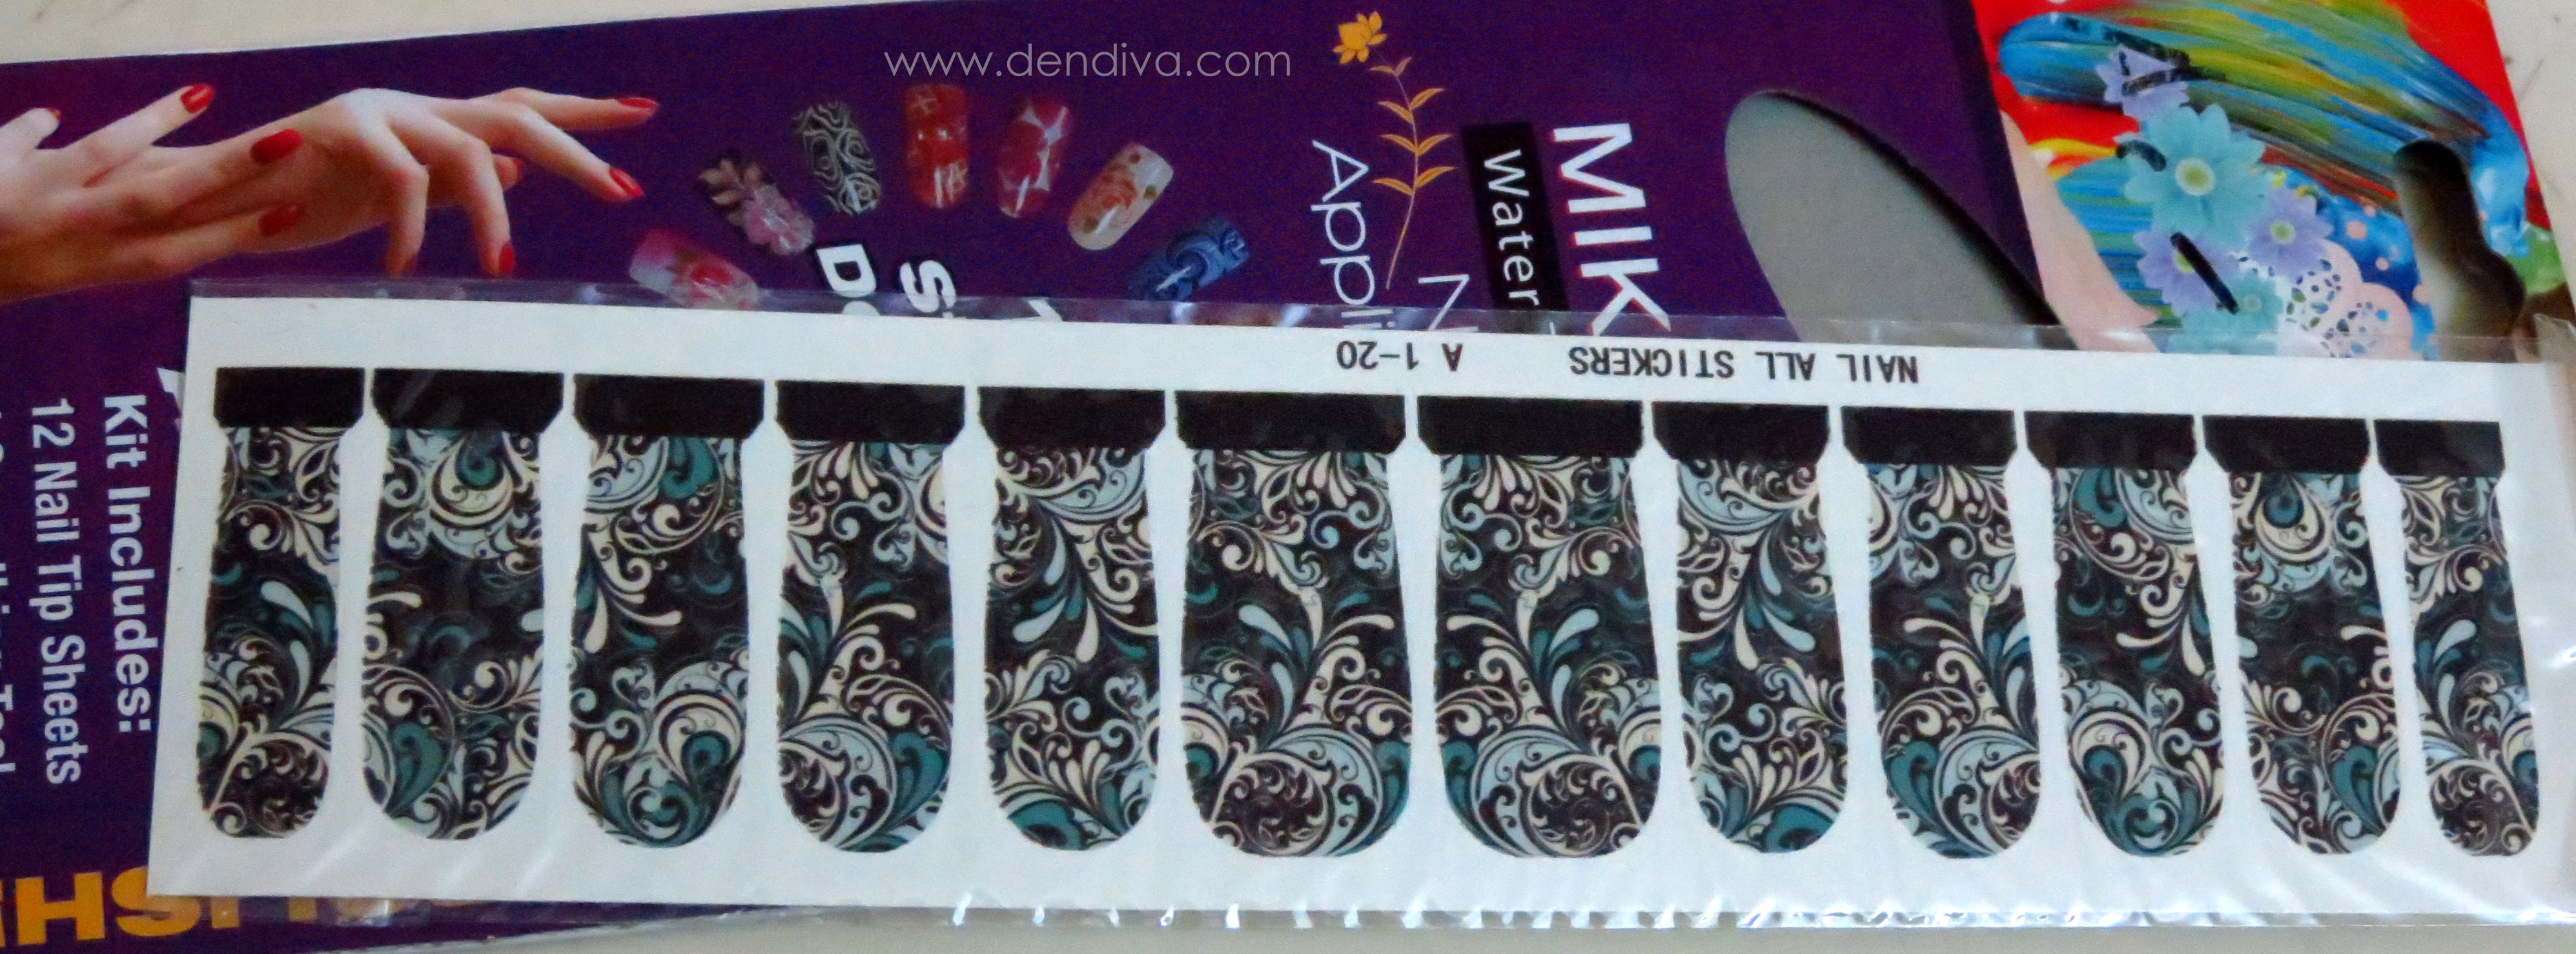 BornPrettyStore Nail Decals Review (dendiva.com)